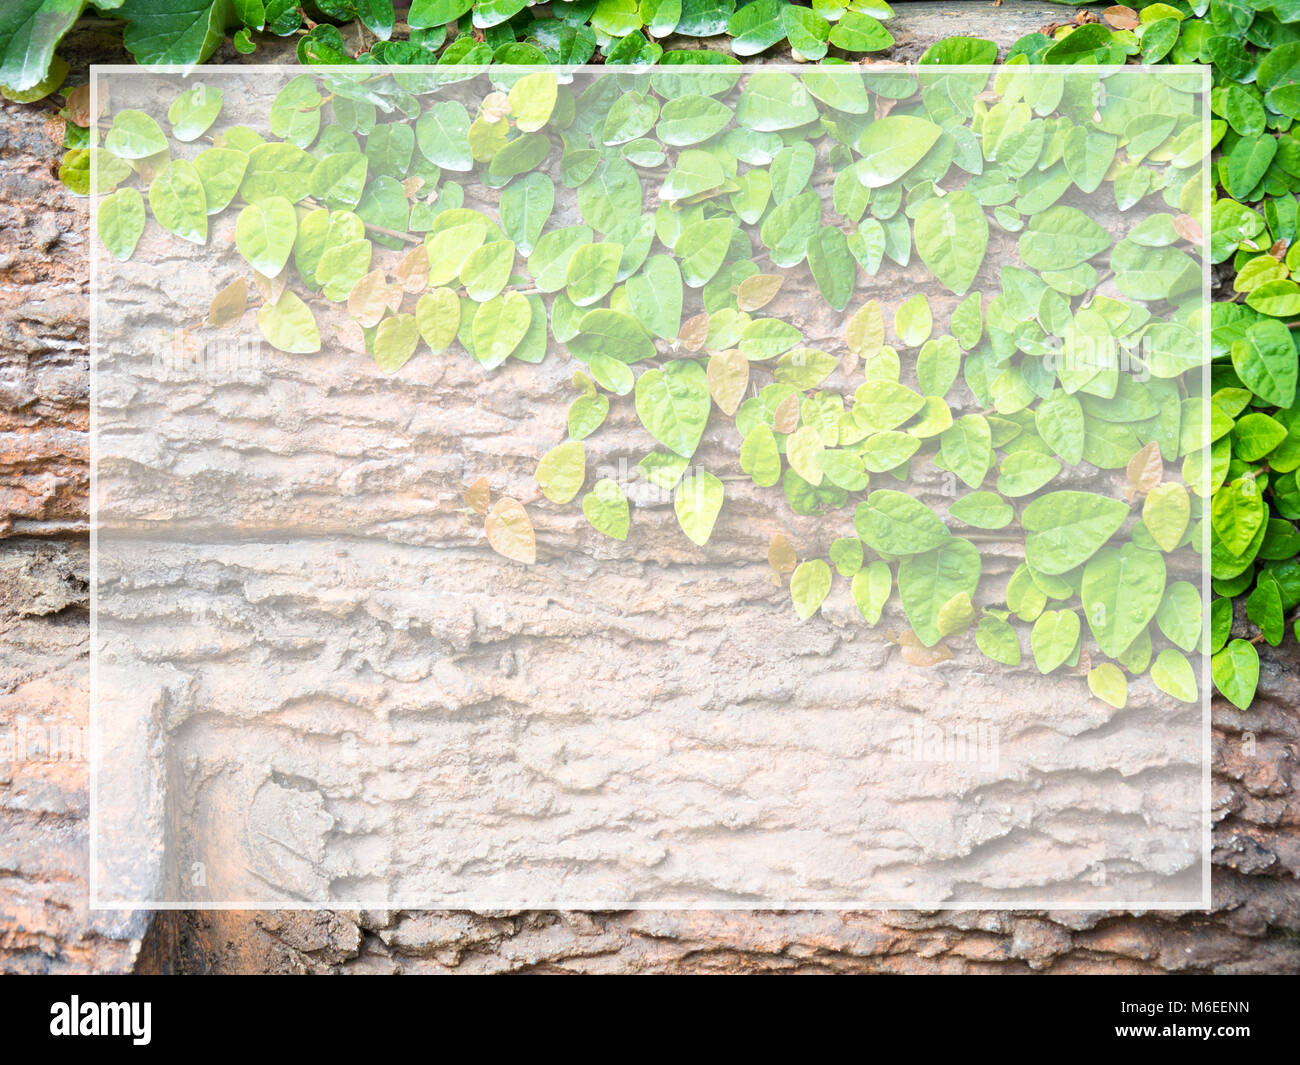 Green leaves stuck on wood White frame for text and content input (Copy Space). Suitable for as background. Stock Photo